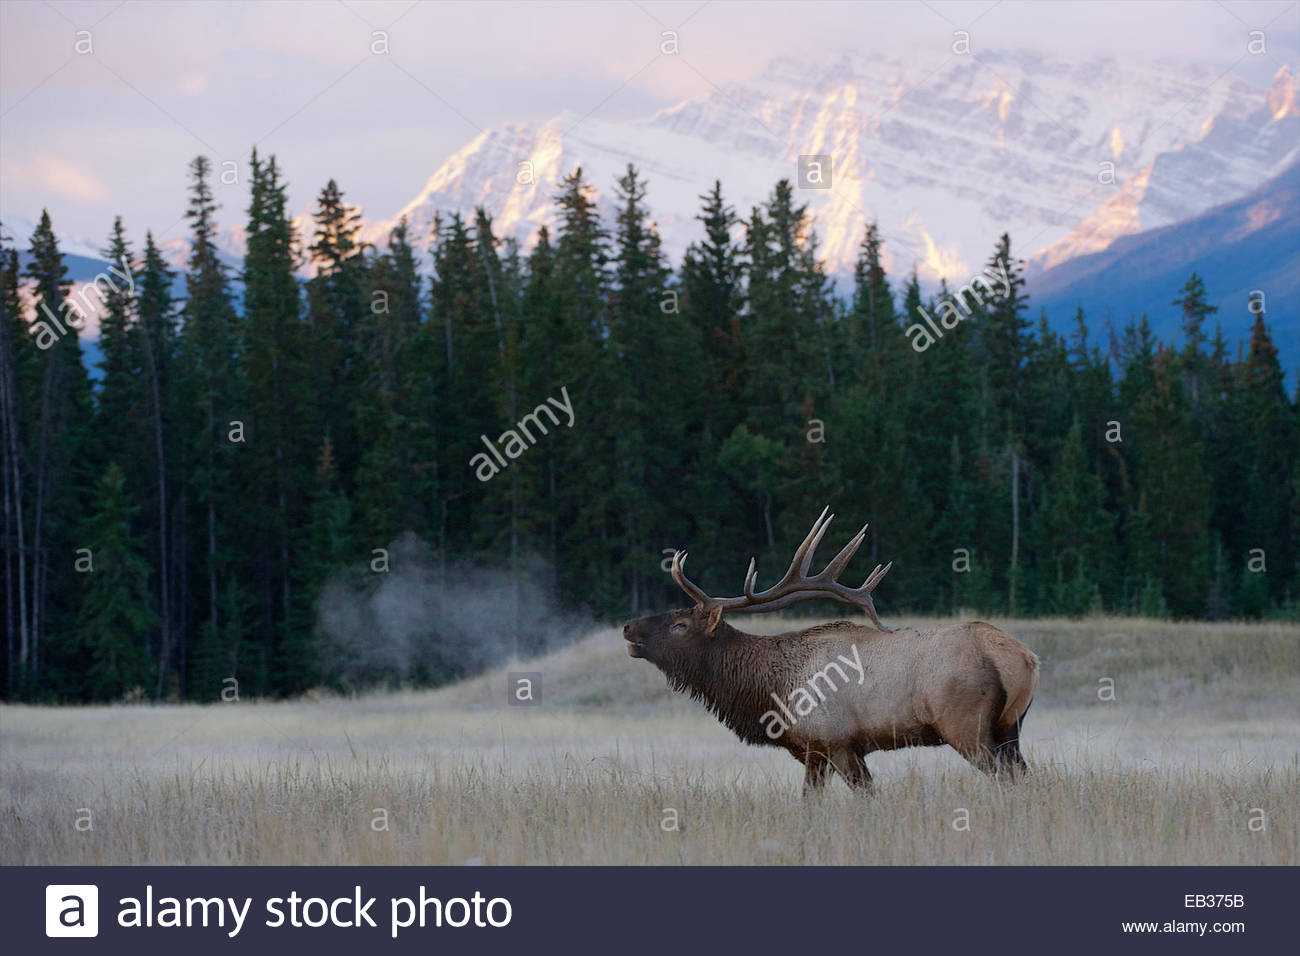 A bull elk breath shows as he calls in the mountains. - Stock Image